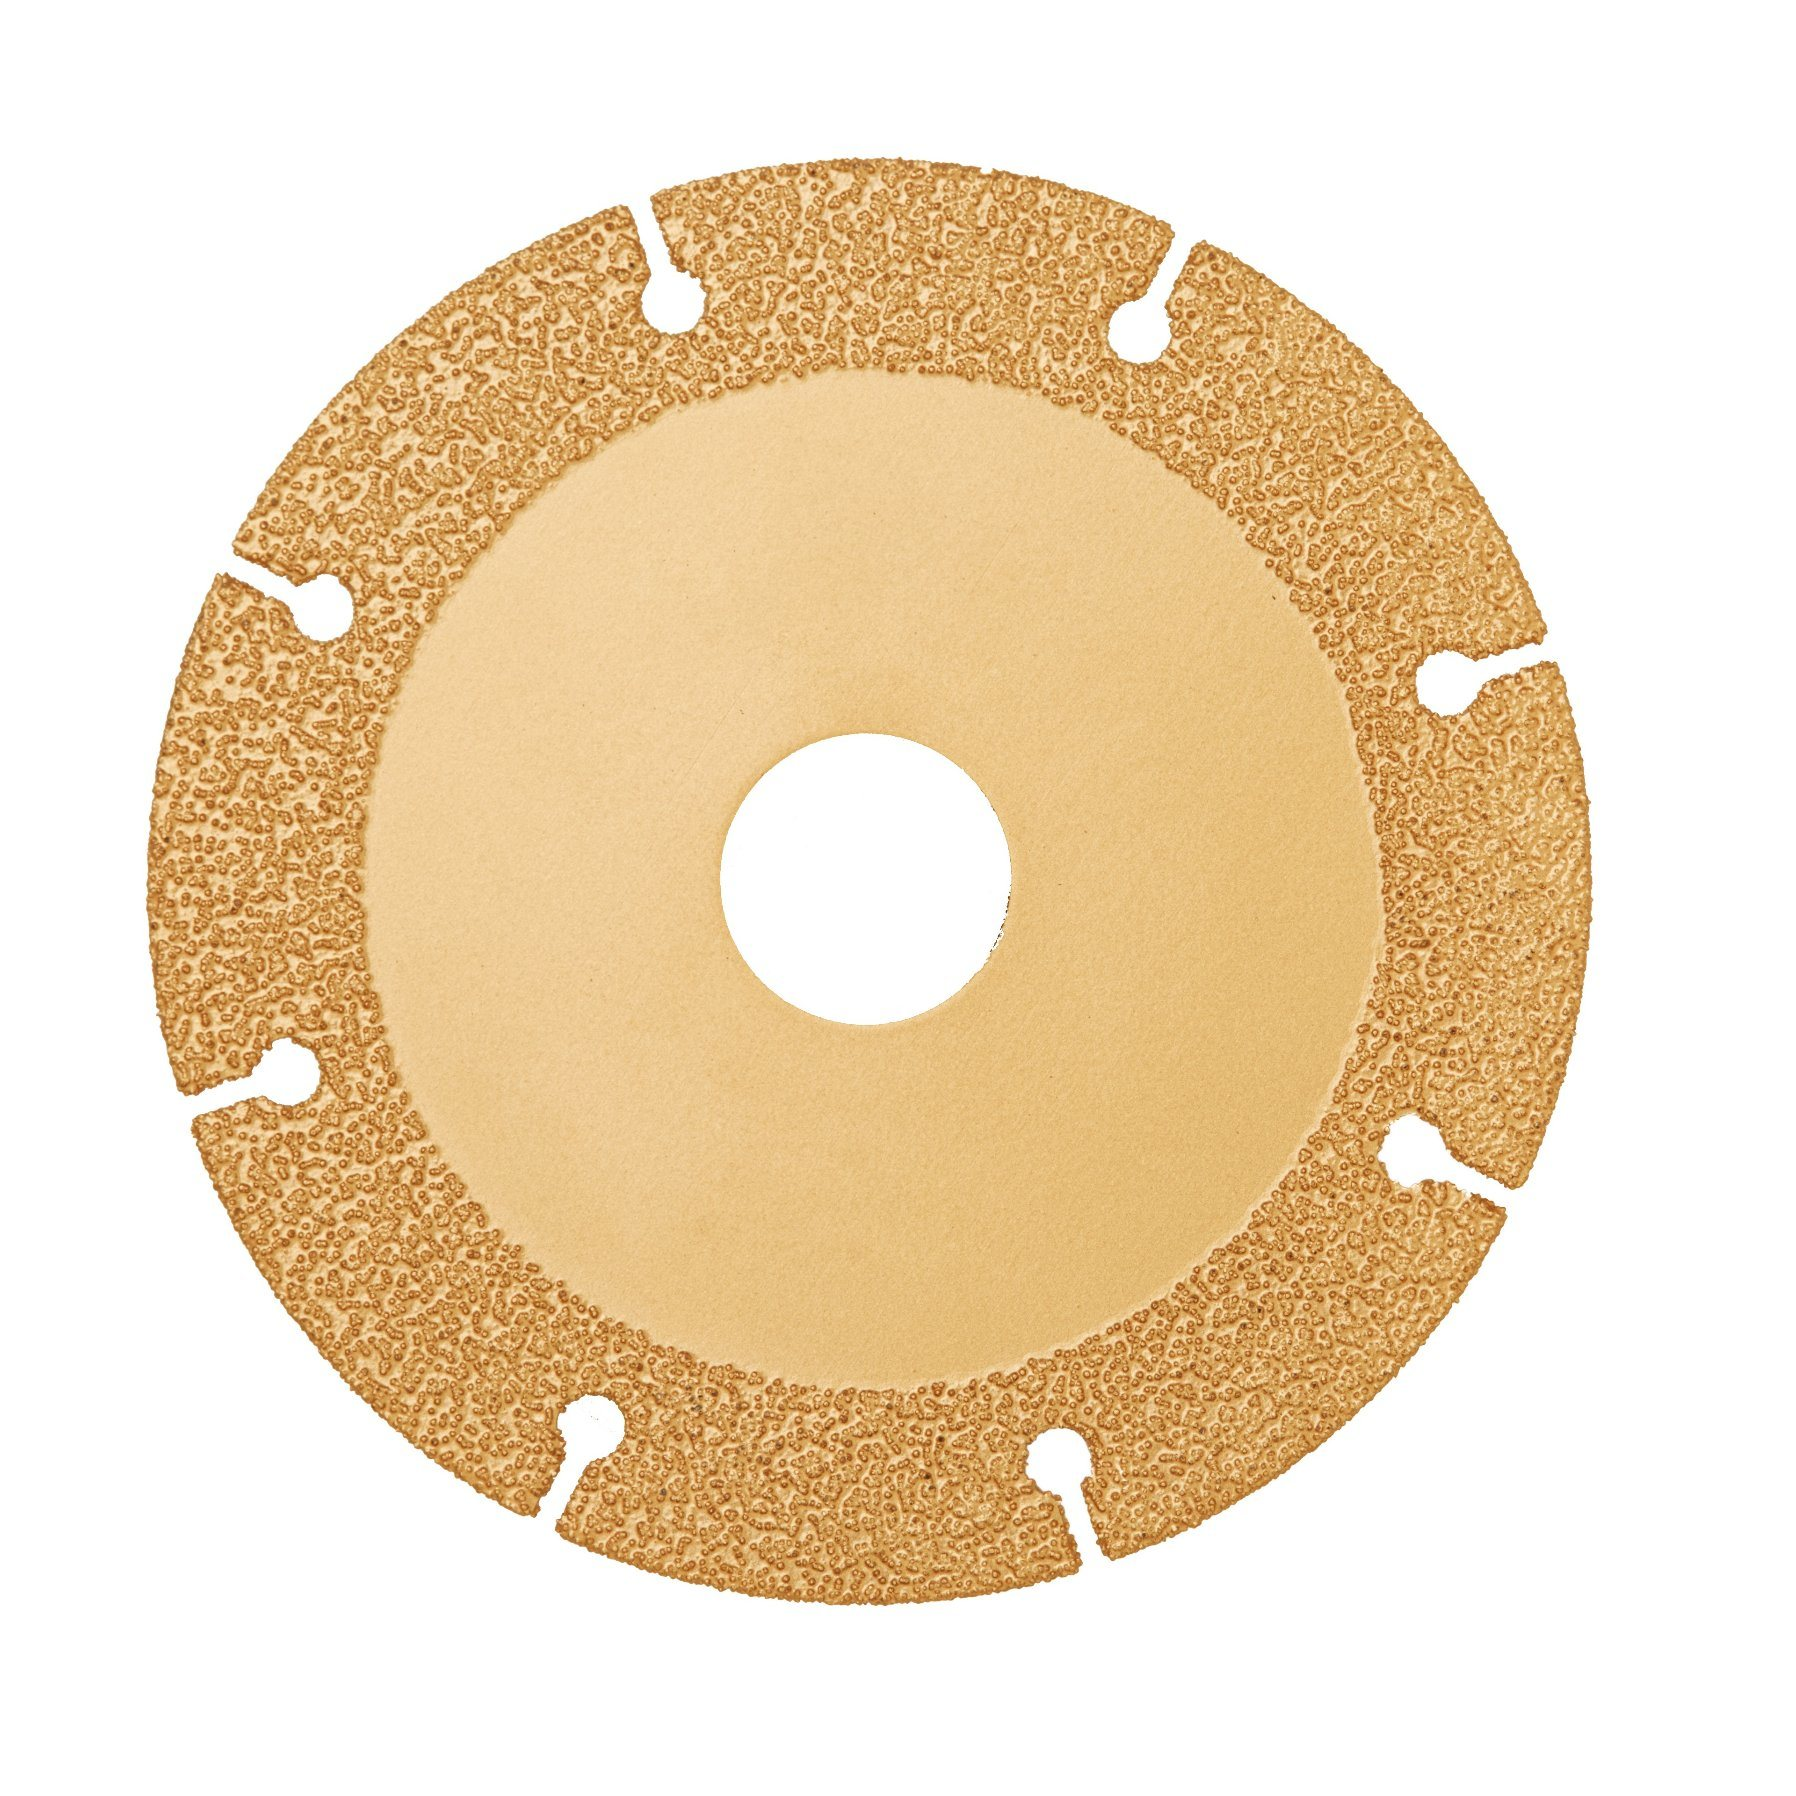 Diamond Cutting and Grinding Wheel Disc Tools for Marble Artifical Stone Ceramic Tiles pictures & photos